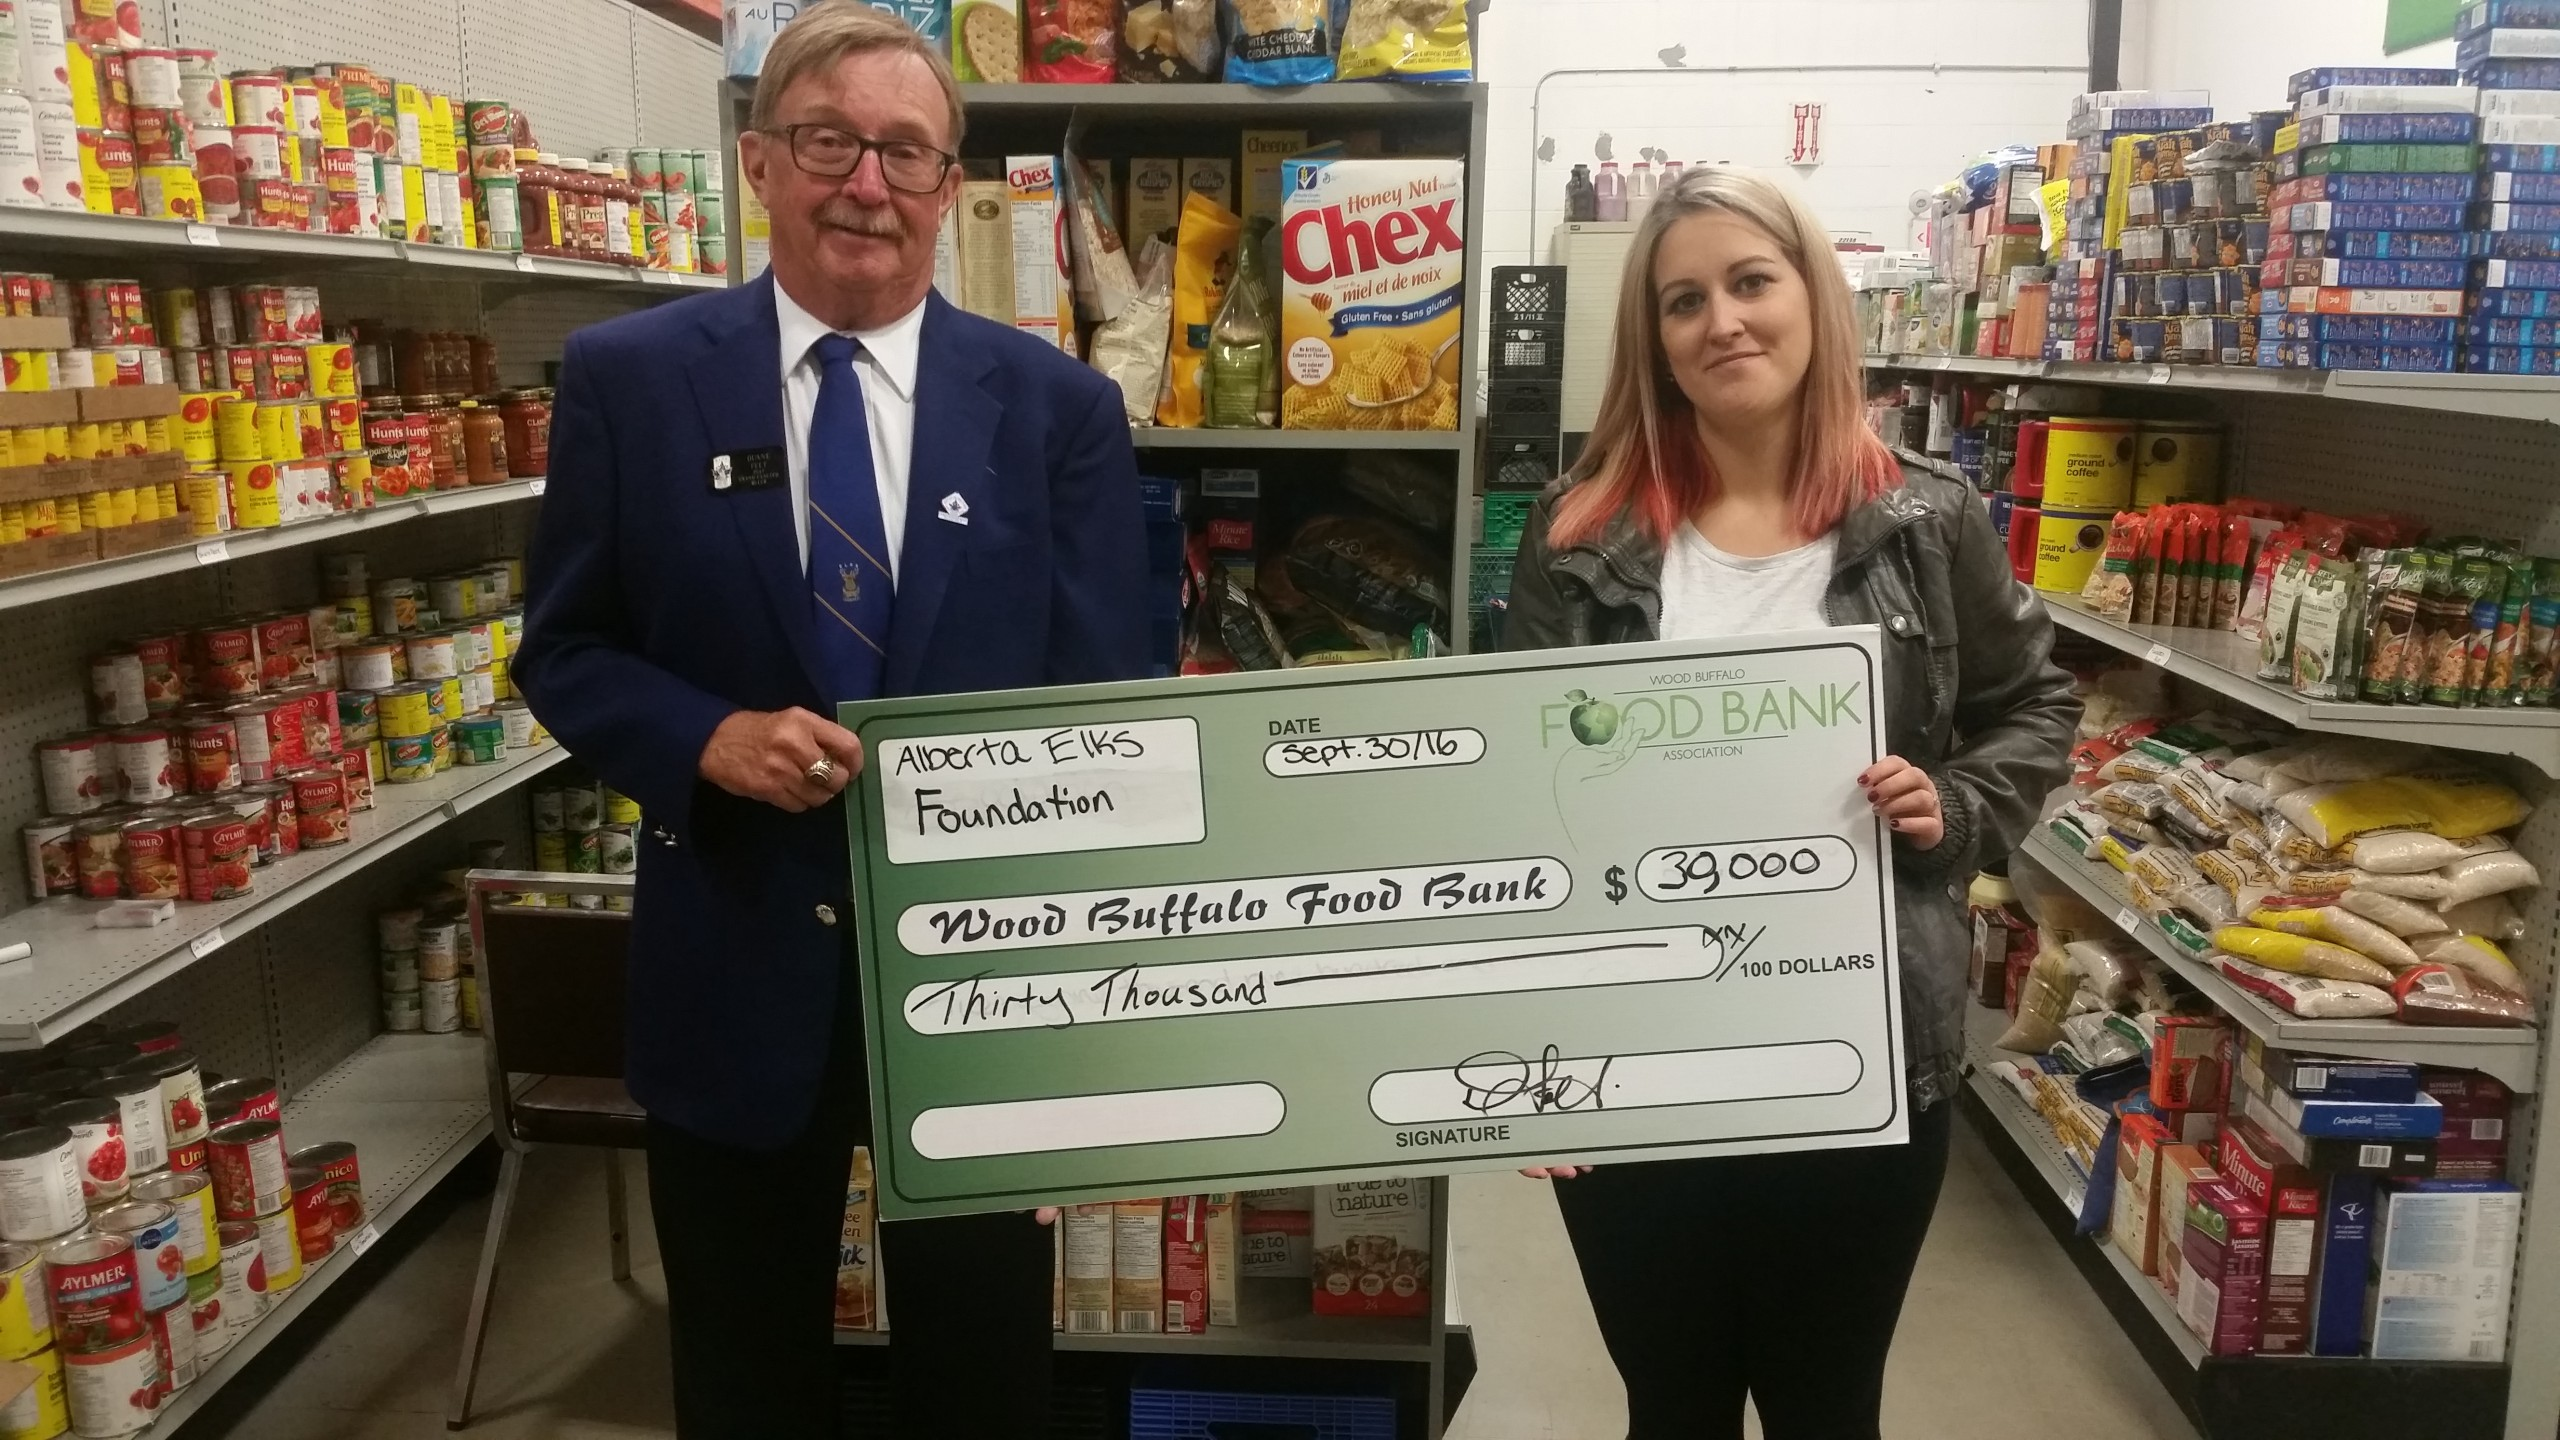 Wood Buffalo Food Bank receives another big donation